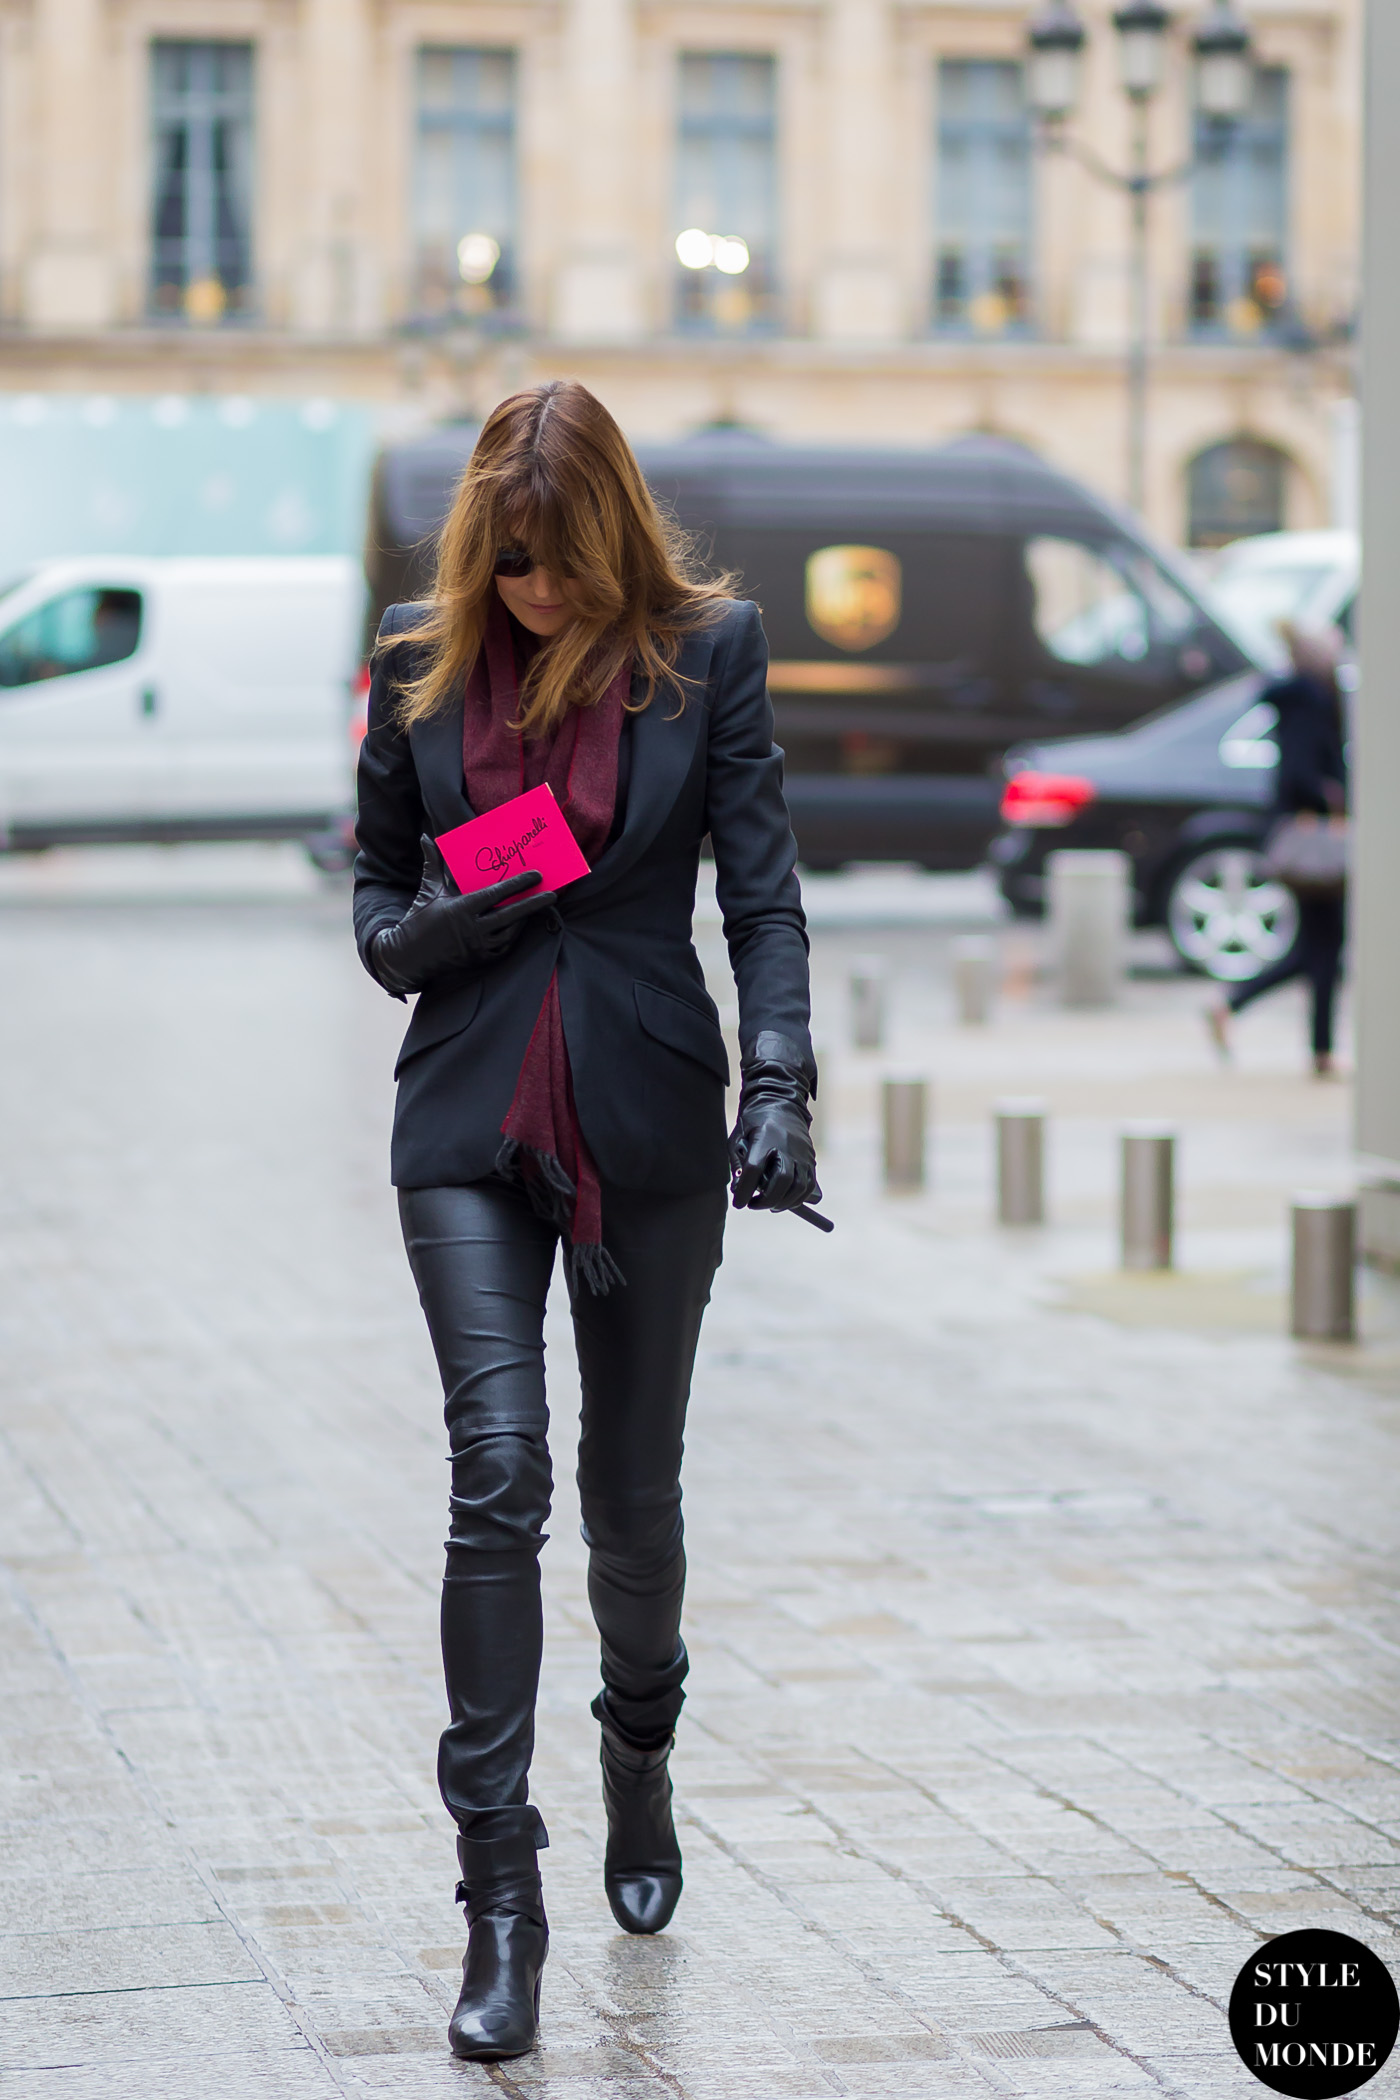 Haute Couture Ss 2015 Street Style Carla Bruni Style Du Monde Street Style Street Fashion